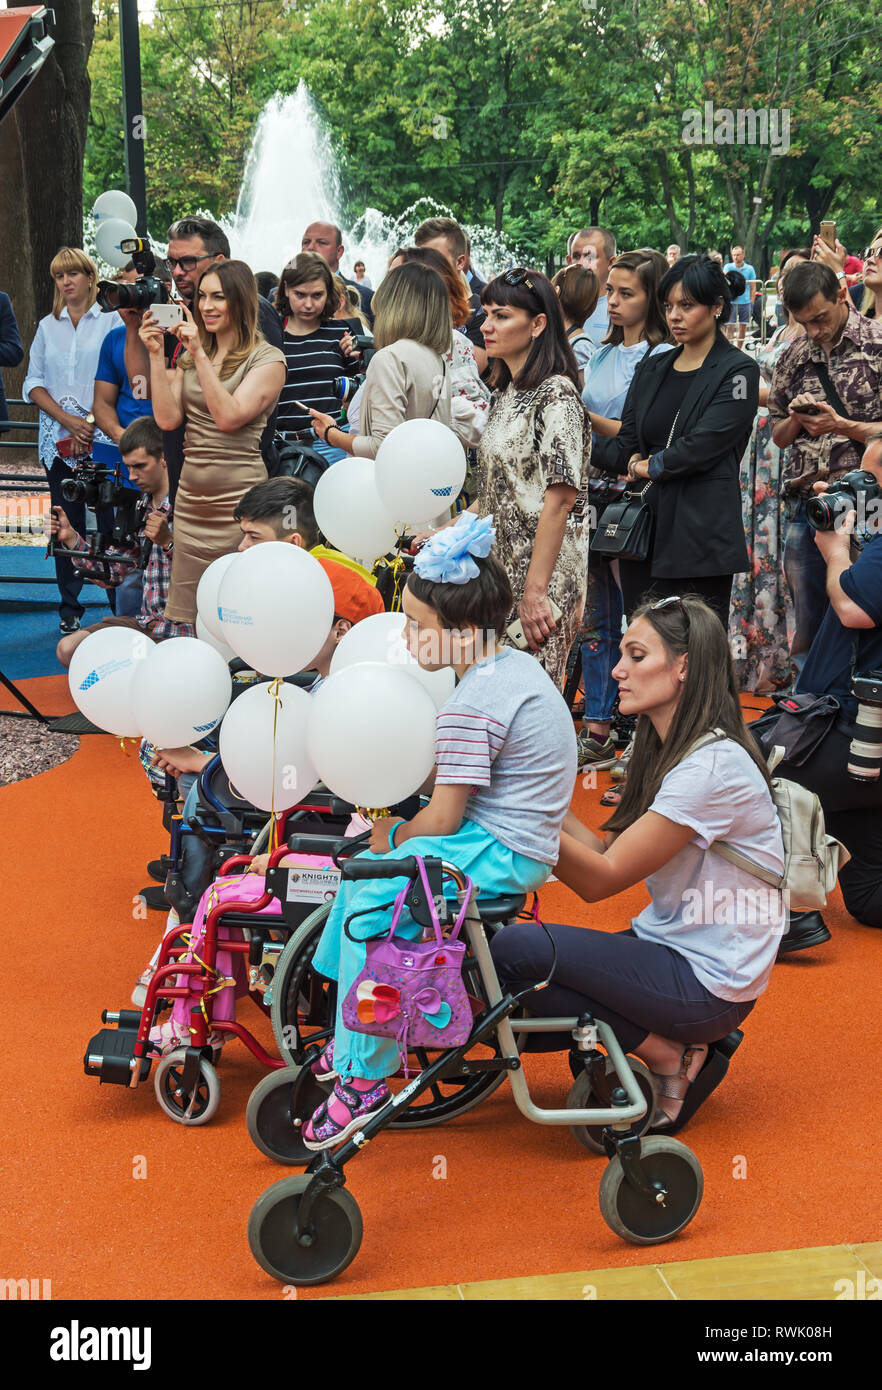 Dnipro, Ukraine - June 27, 2018: Cute kids in wheelchairs at inclusive park for children with special needs - Stock Image